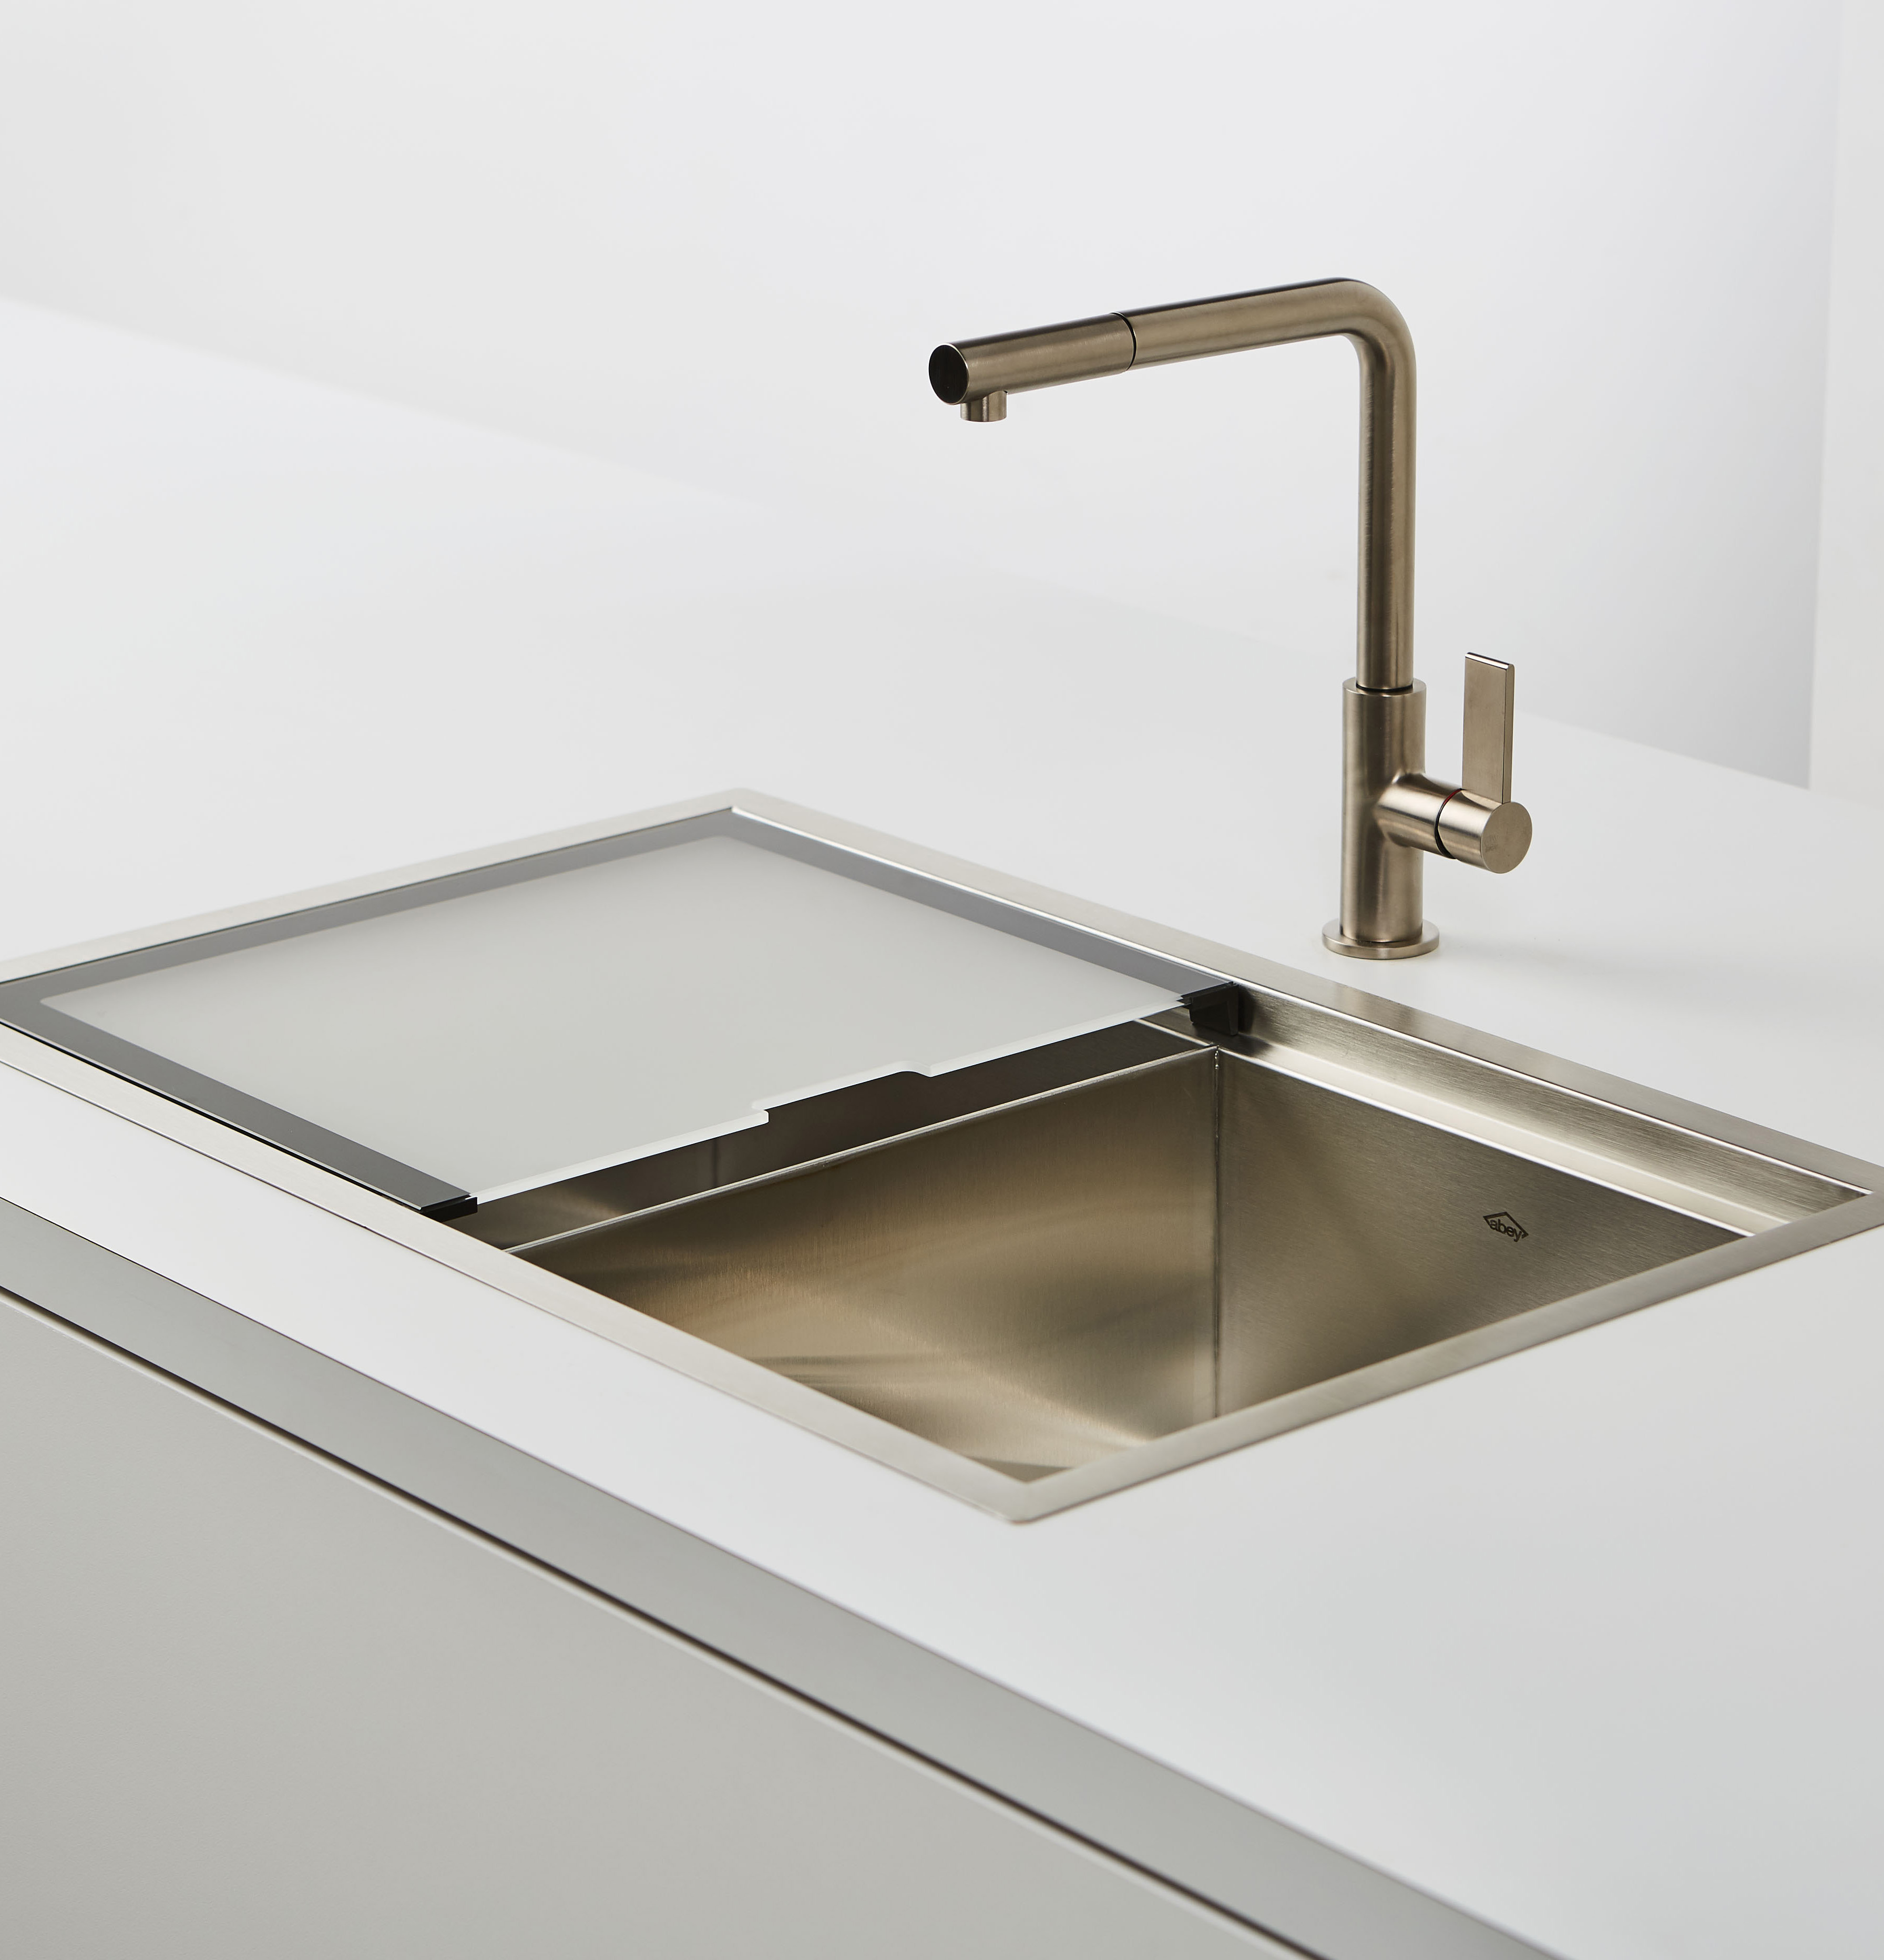 Abey Sink Mixers